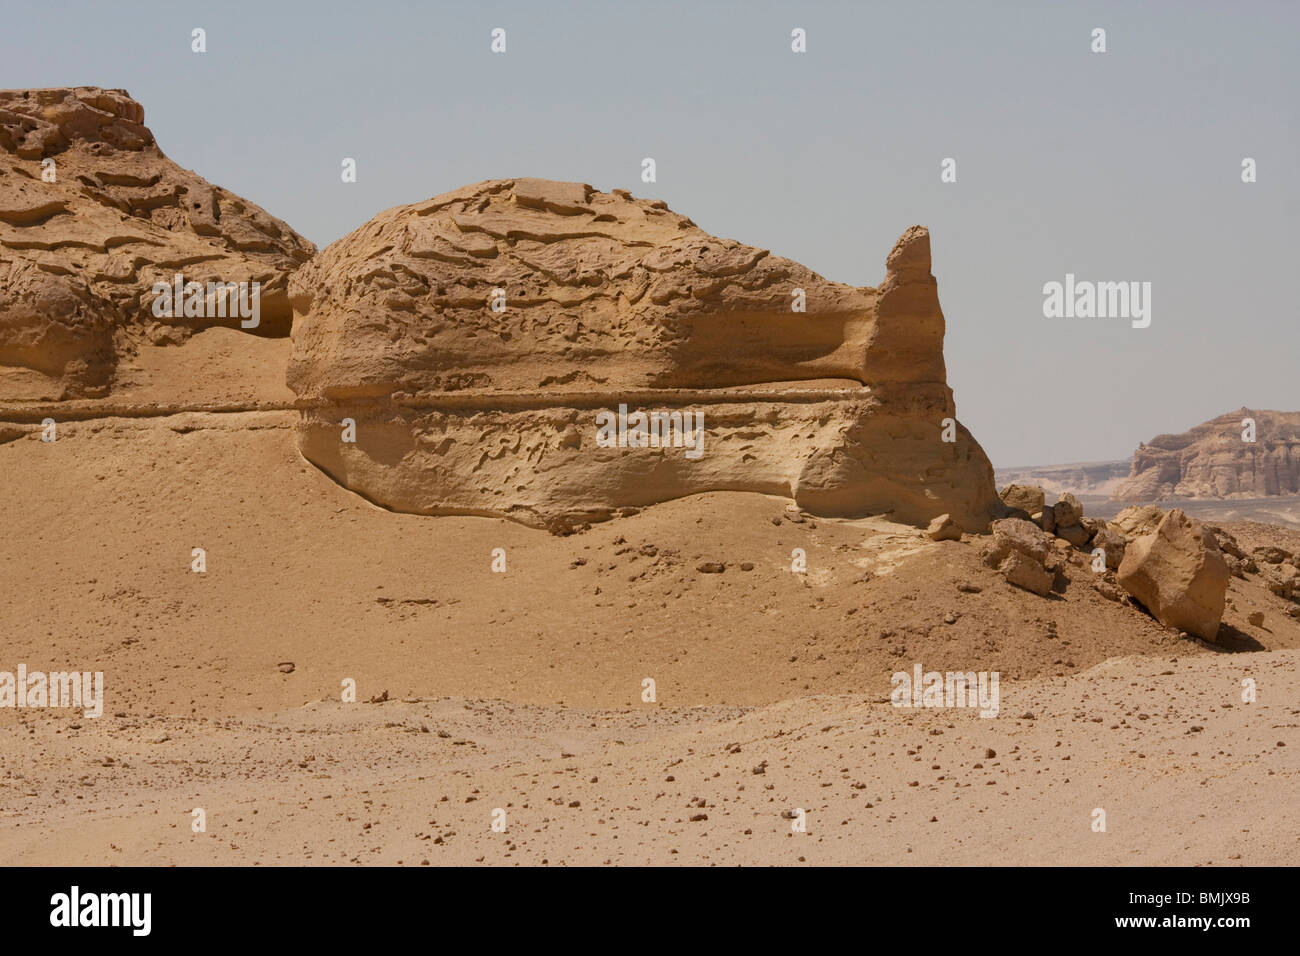 Sandstone formations resulting from wind erosion in Wadi Al-Hitan (Whale Valley), El Fayoum, Egypt - Stock Image